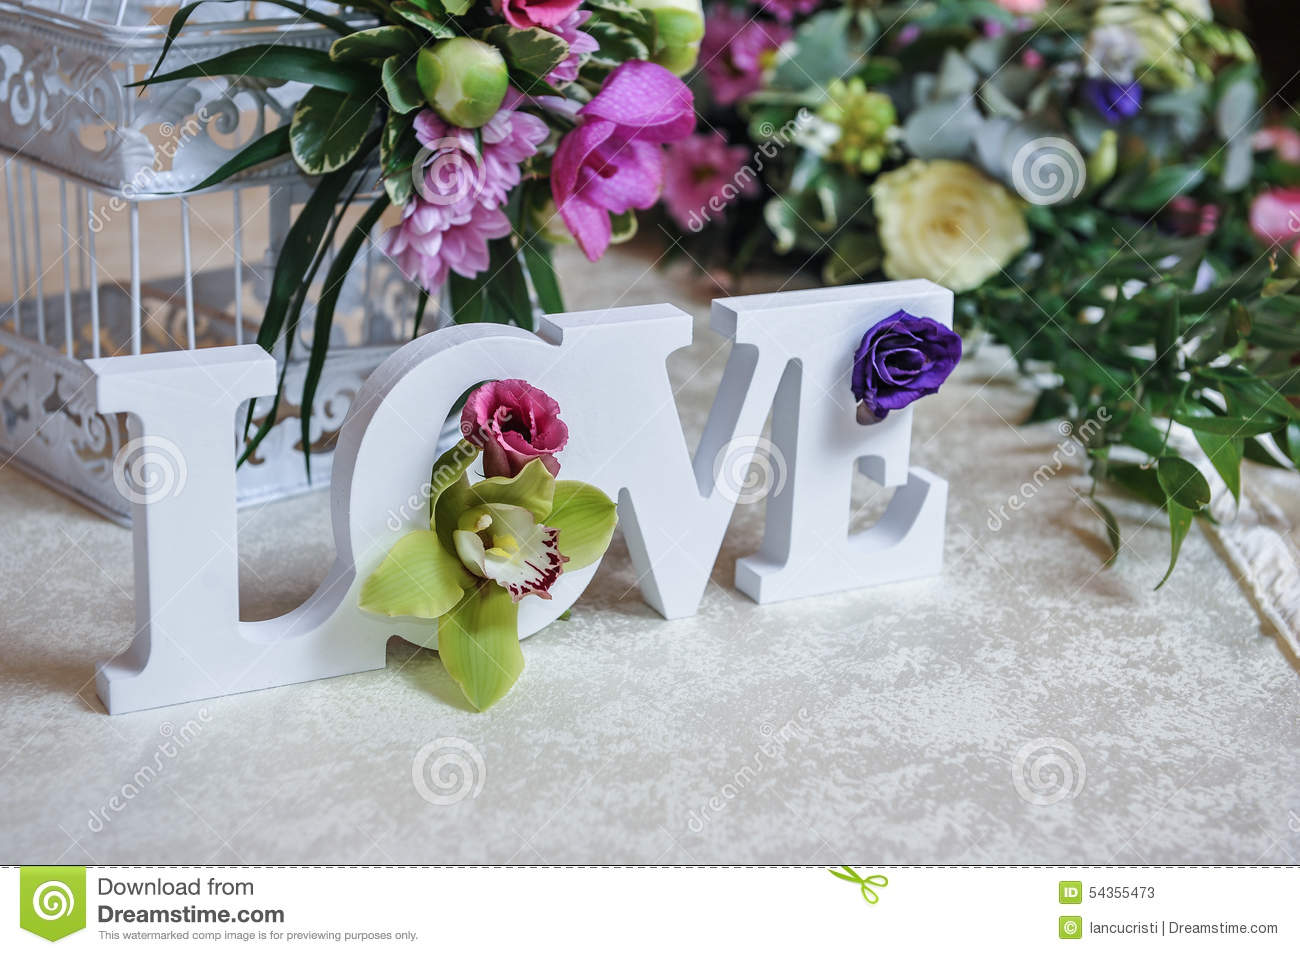 wedding decor love letters and flowers on table fresh. Black Bedroom Furniture Sets. Home Design Ideas